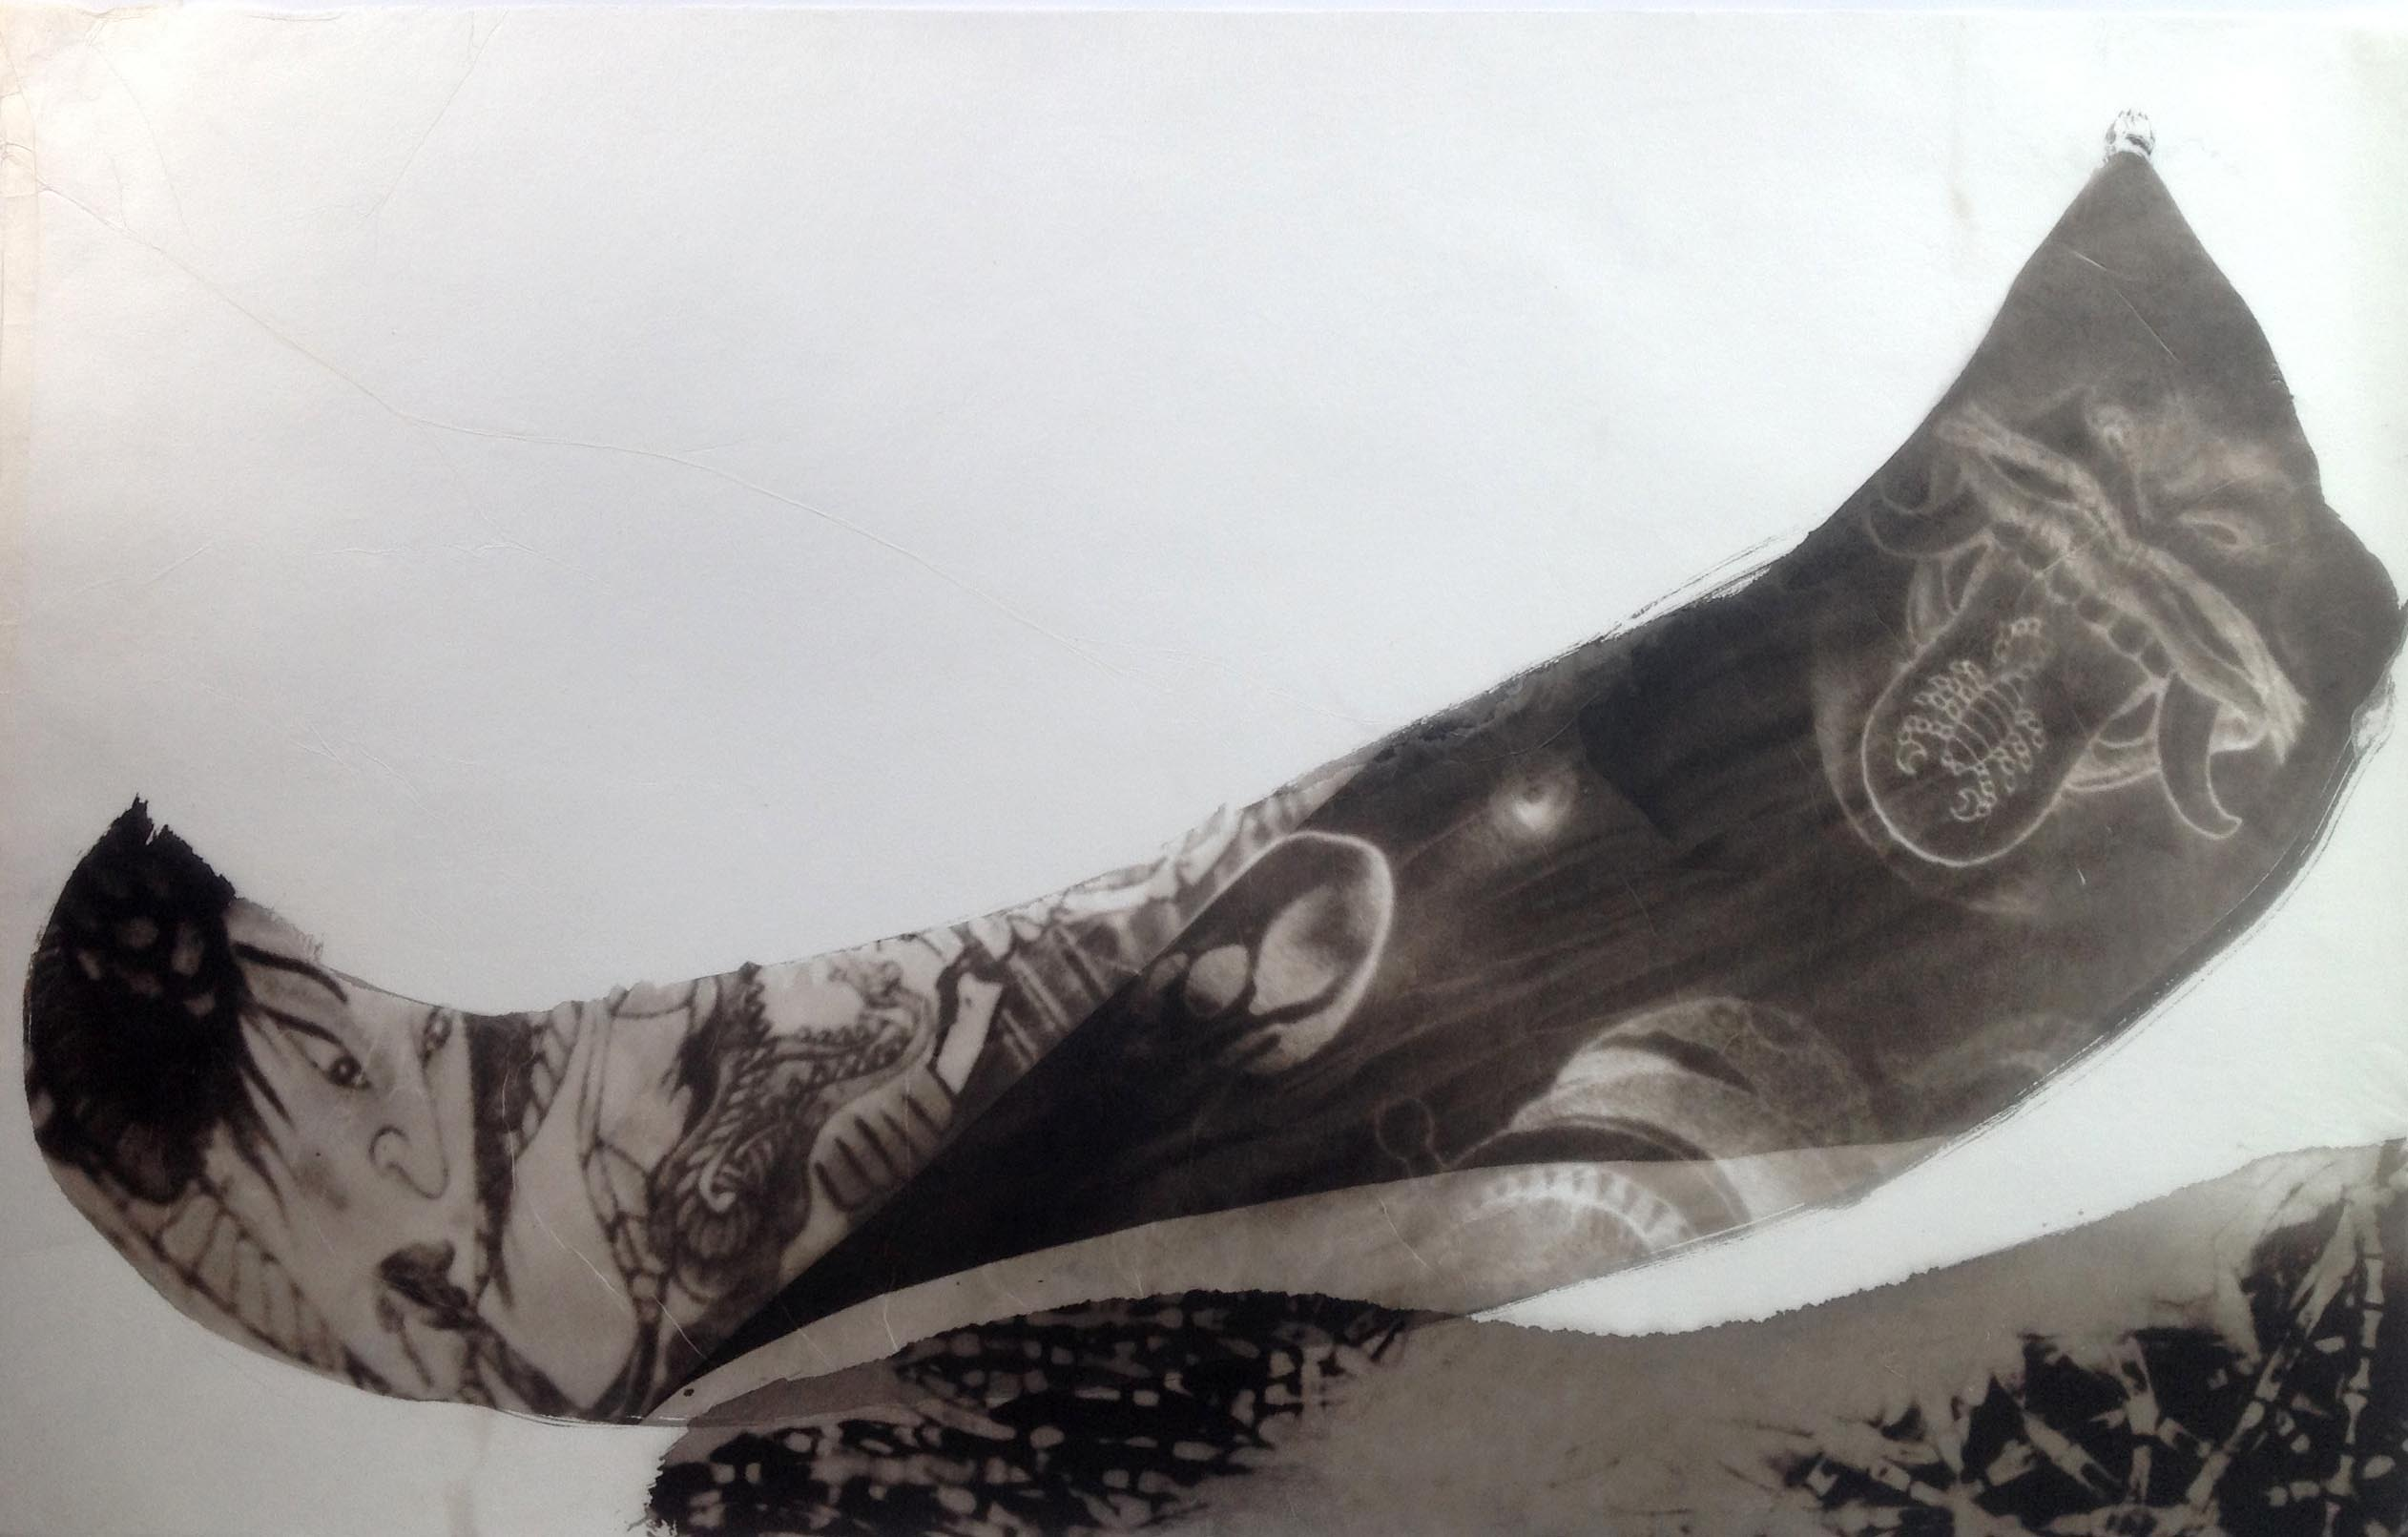 palladium print - abstract image of tattoos shaped in the form of a boat by Alice Garik